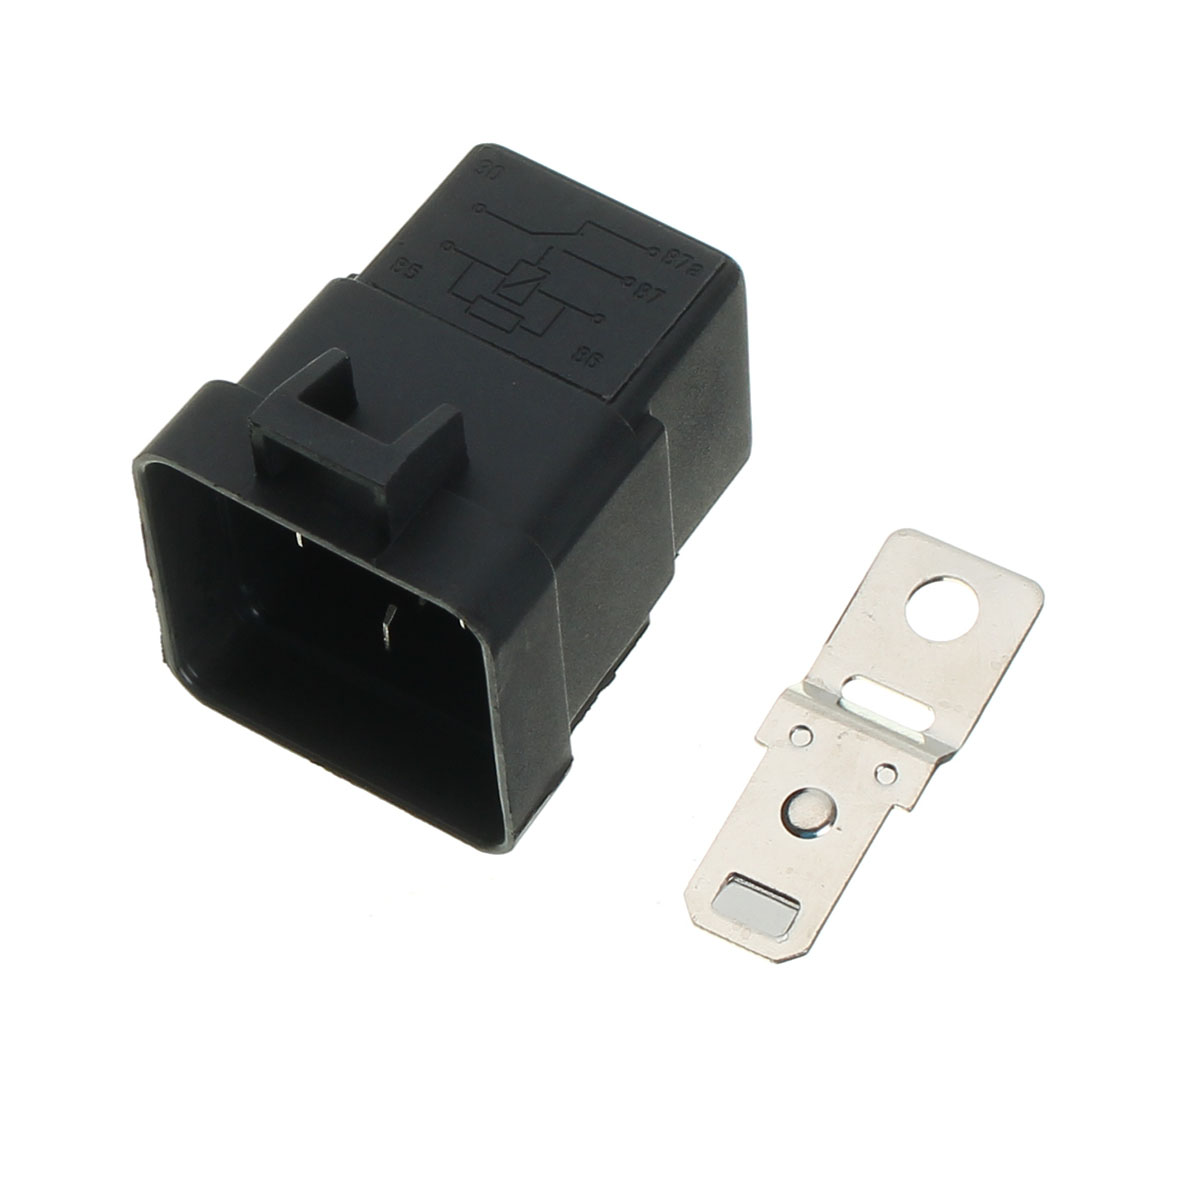 12V 40A 37*47*36mm Outboard Boat Motor Power Trim Relay For Mercury Force 882751A1 3854138 73040 828151 584416 Car Switches & Relays    - AliExpress